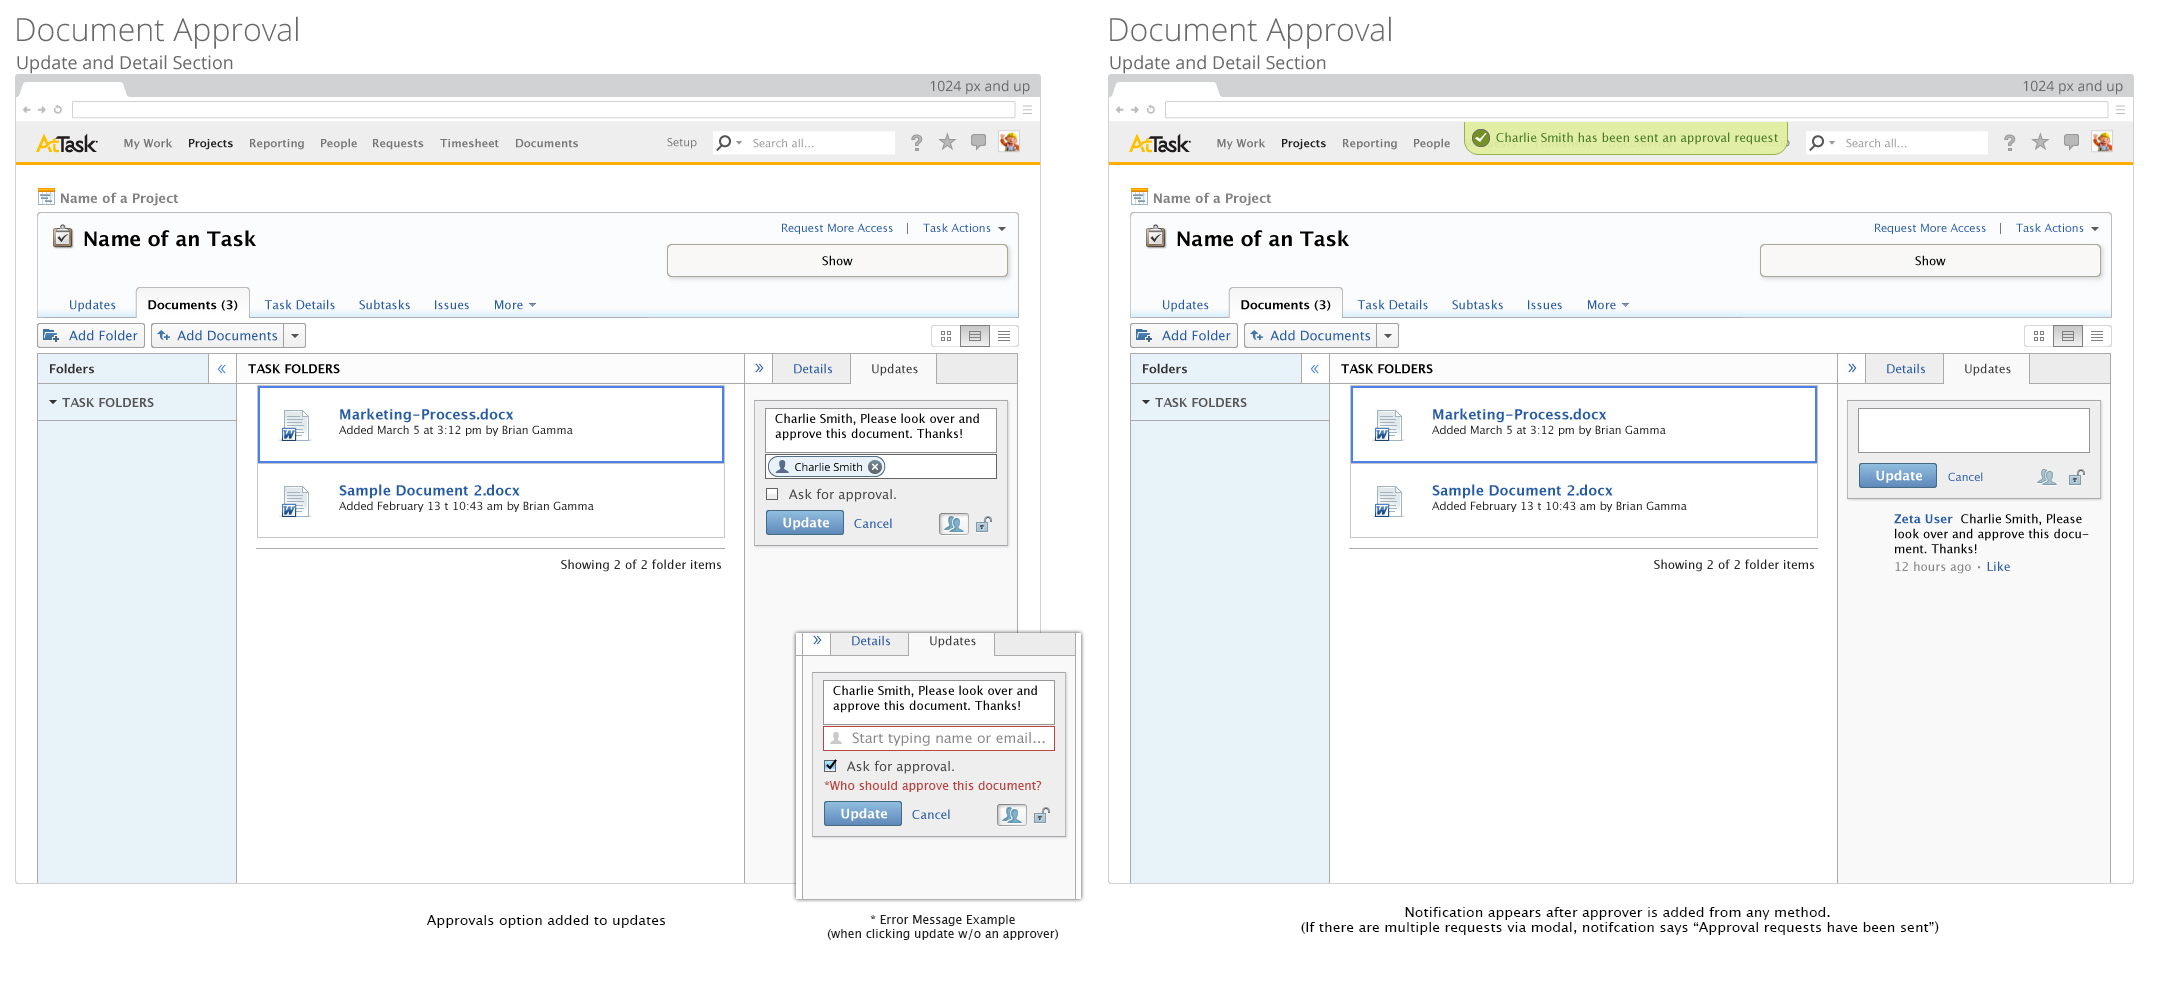 comments-approvals-workflow